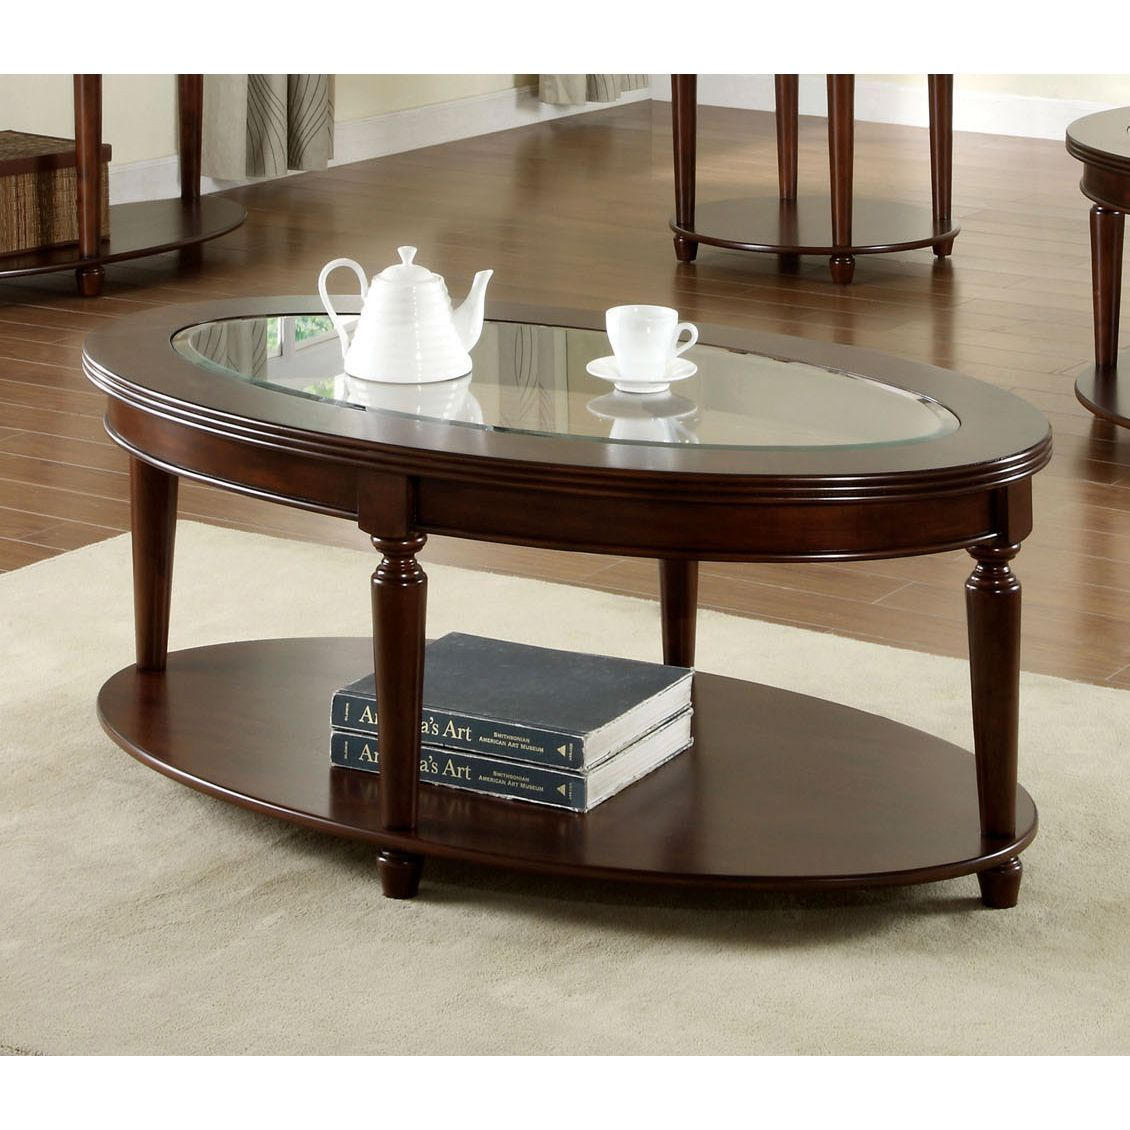 This Beautiful Coffee Table Features An Oval Shape And A Rich, Dark Cherry  Finish.